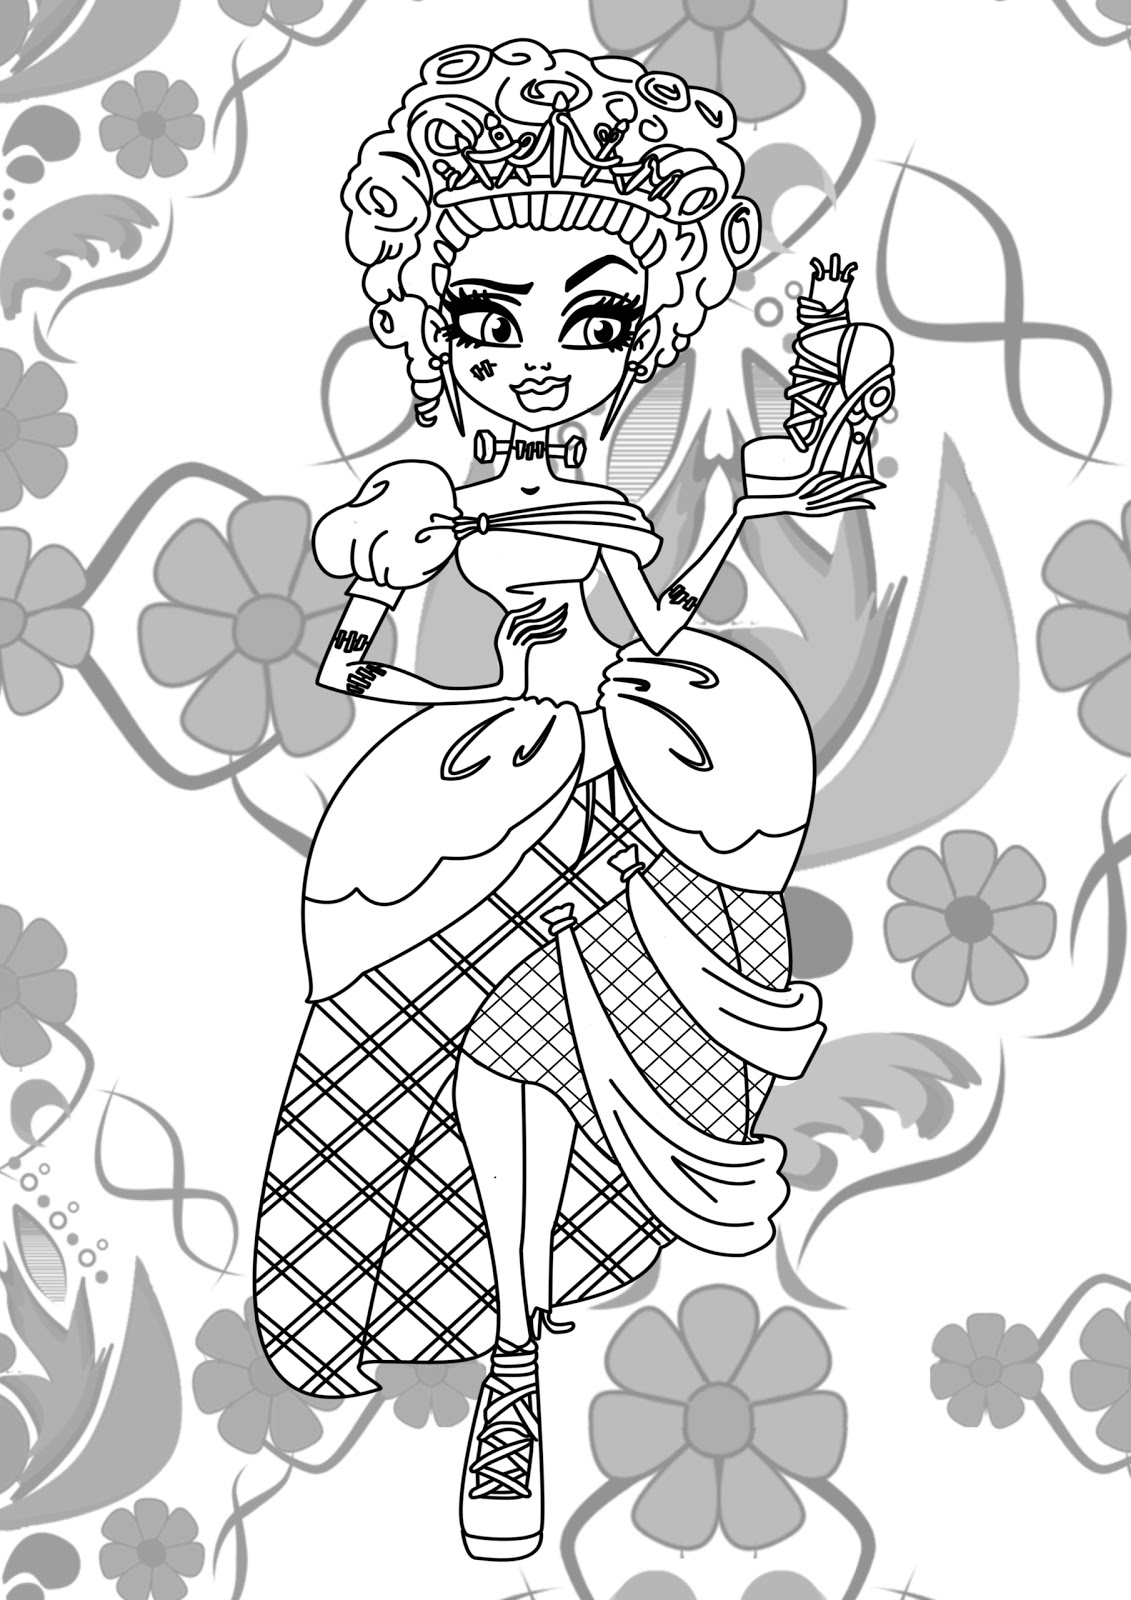 monster high coloring picture monster high clawdeen wolf coloring pages team colors high picture coloring monster